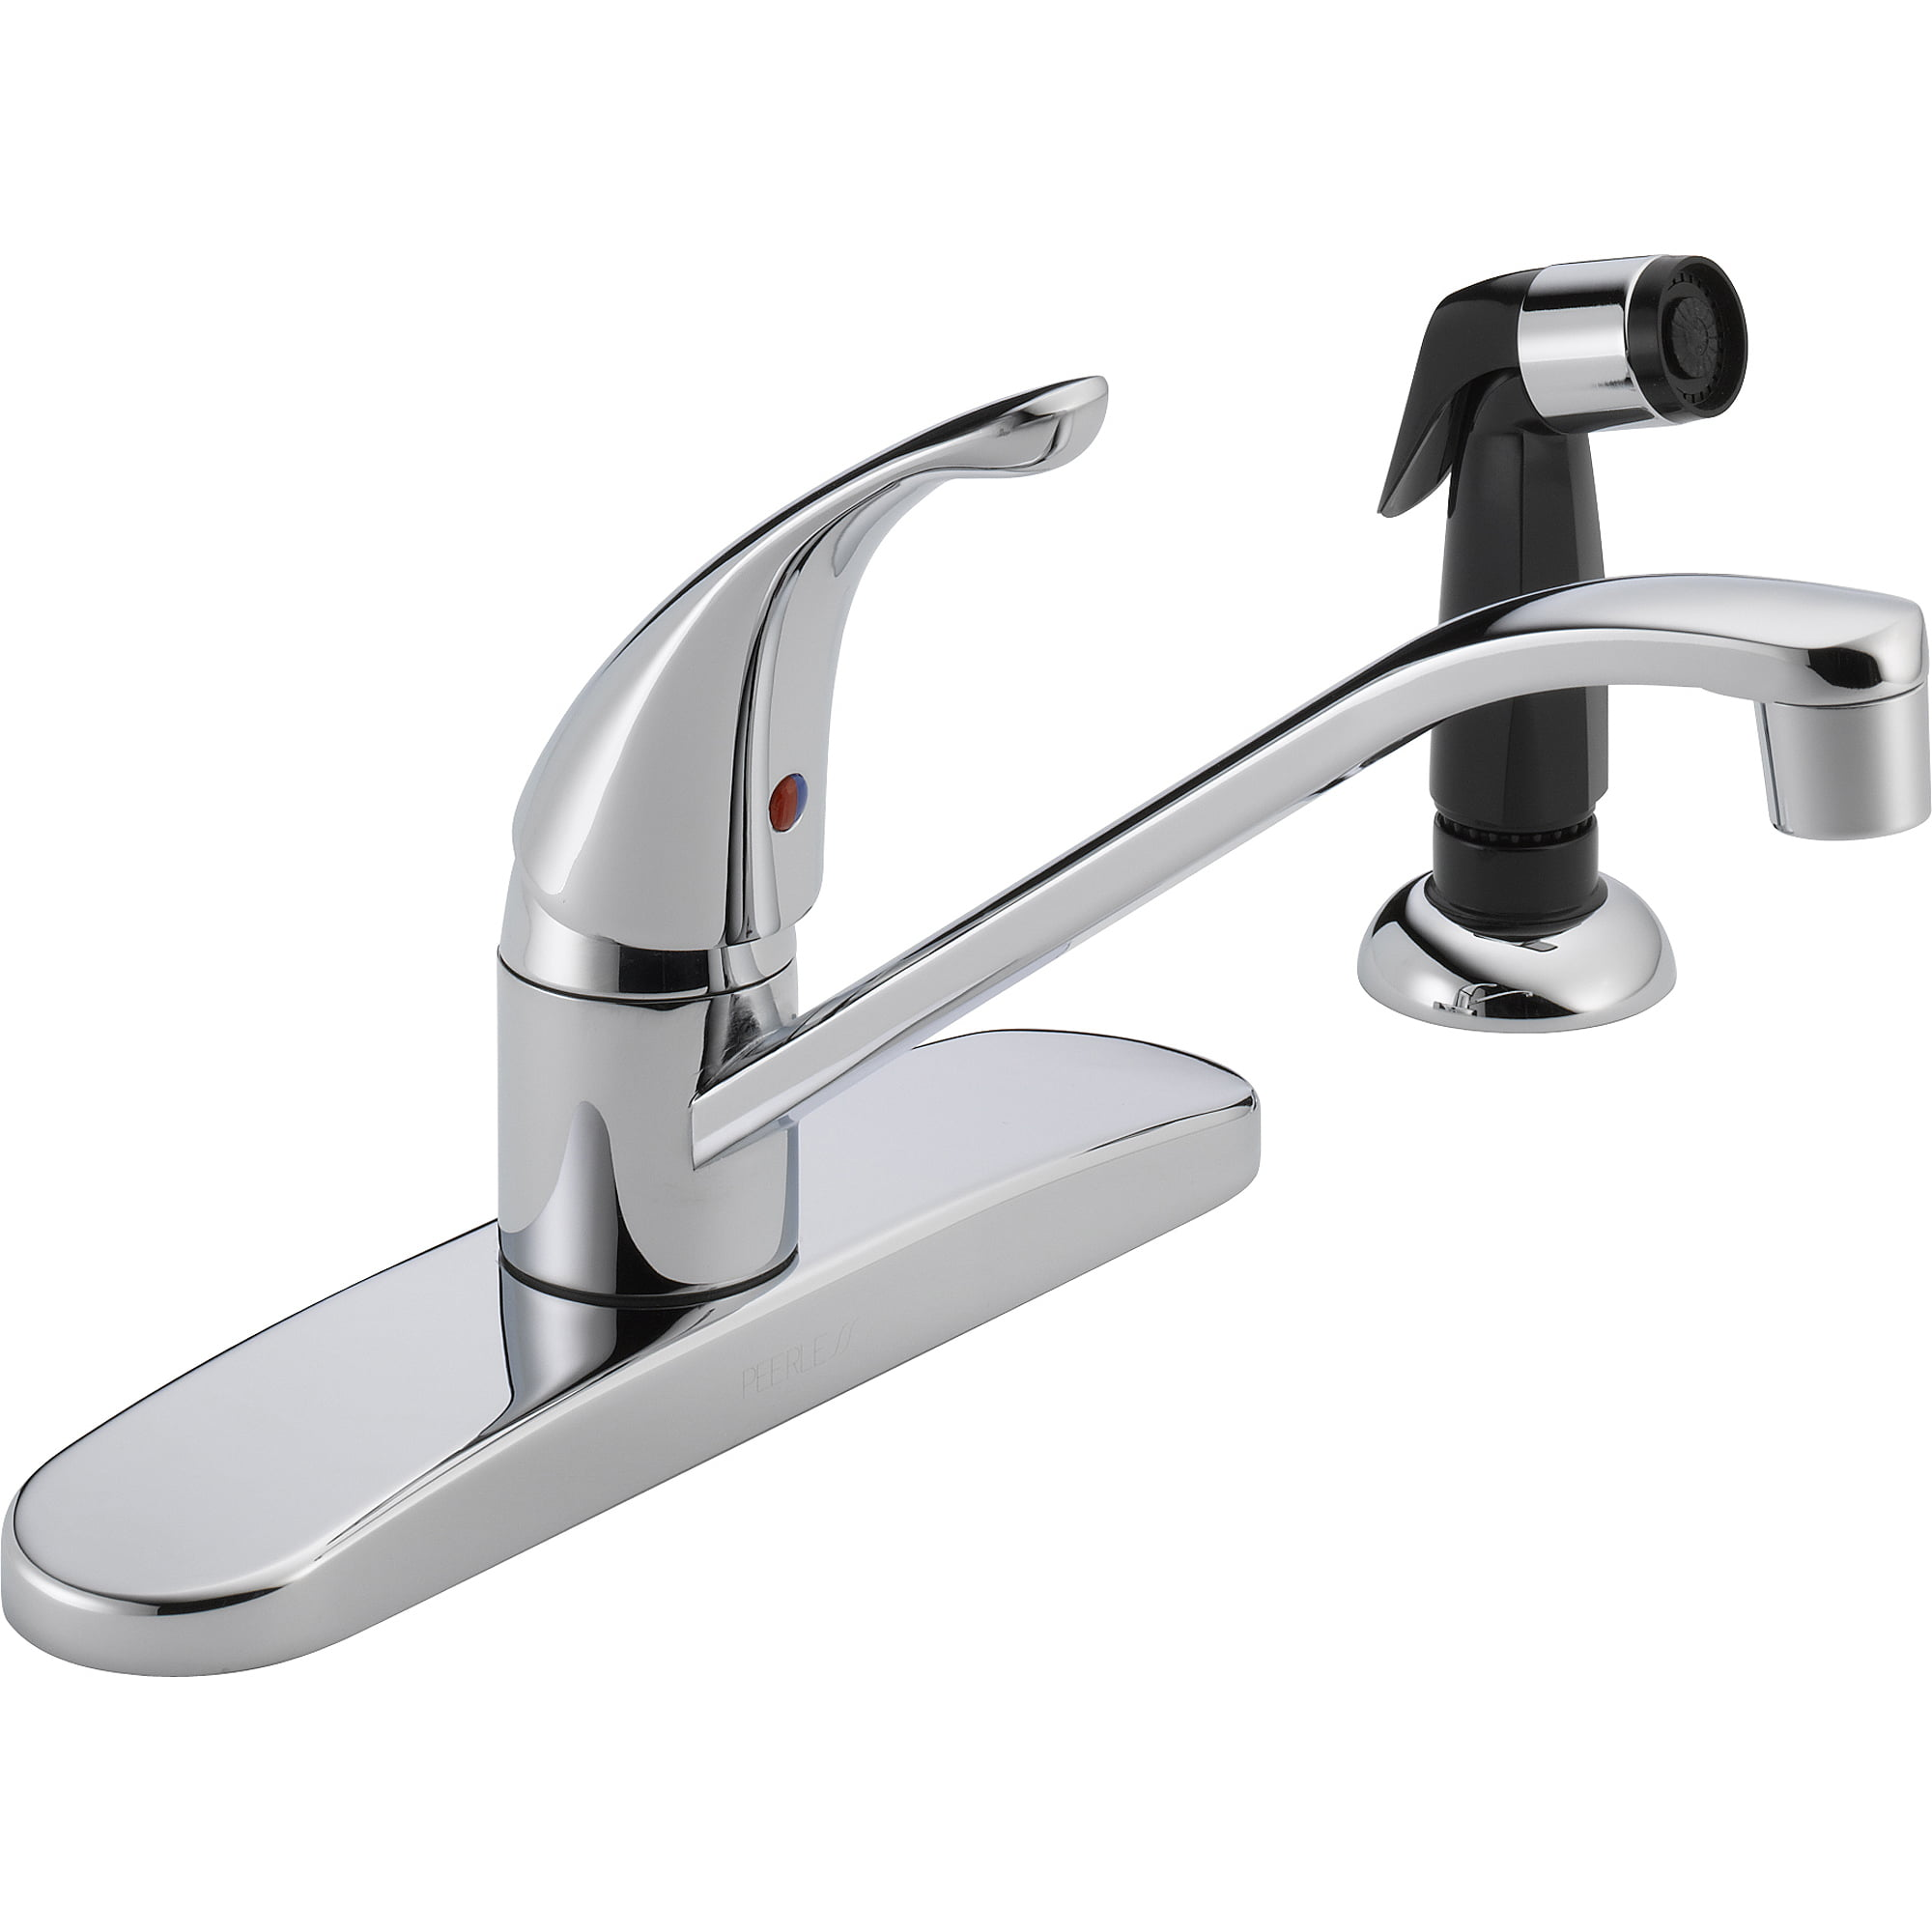 exceptional Kitchen Faucets Single Handle With Sprayer #5: Peerless Single Handle Kitchen Faucet with Side Sprayer, Chrome, #P115LF-W  - Walmart.com